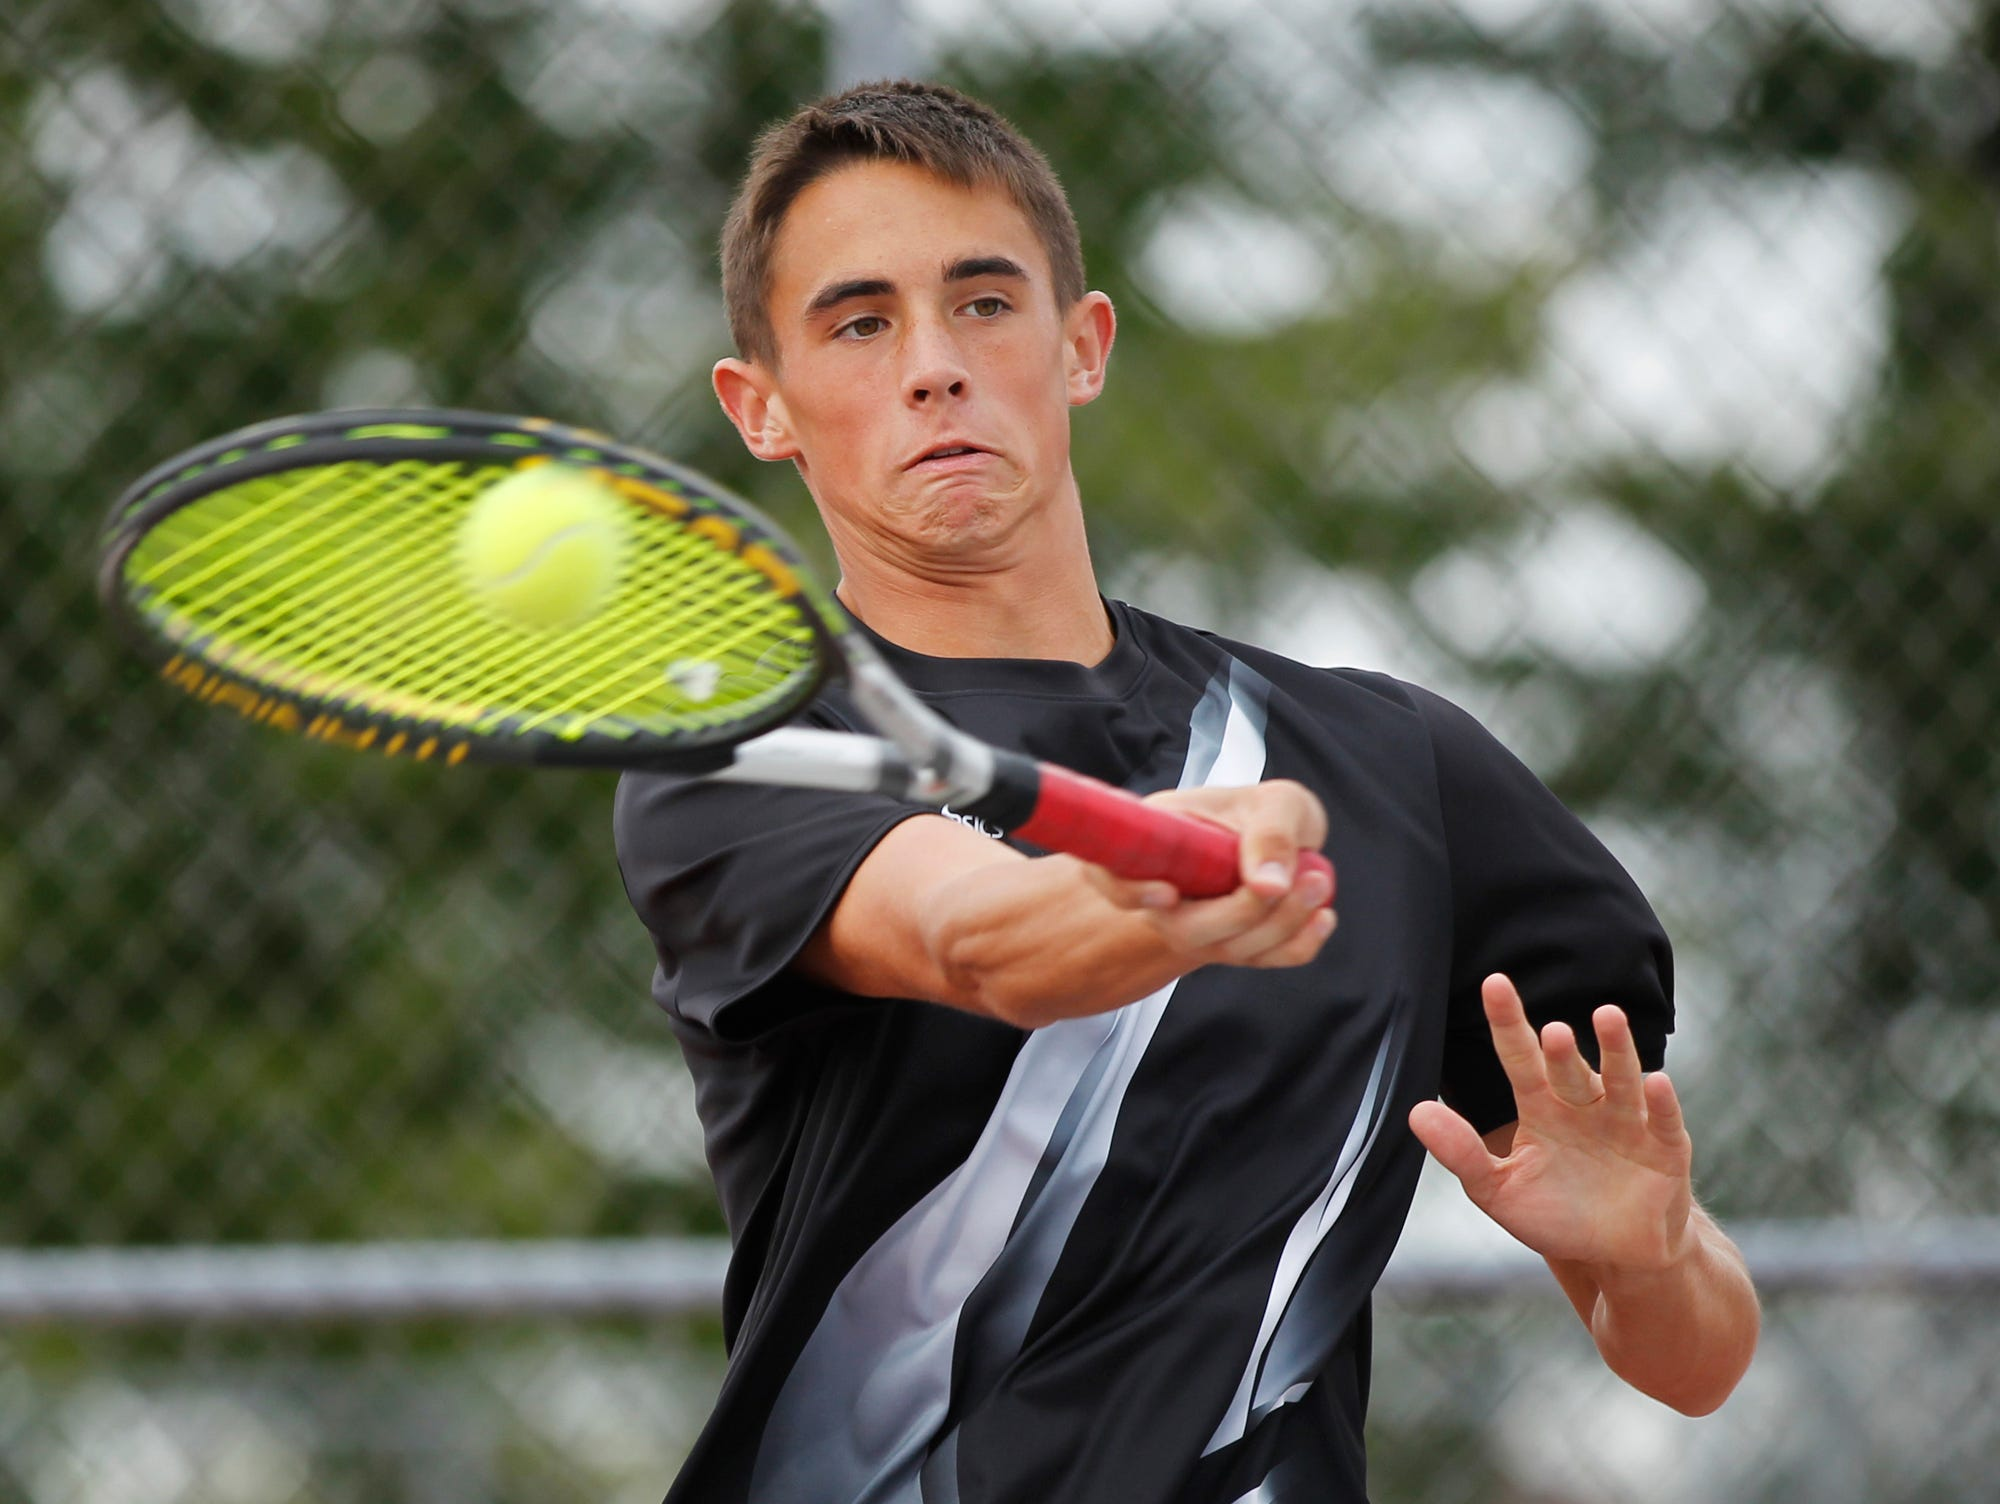 Lafayette Jeff's Jack Moulton with a return against West Lafayette's Ryan Hollis in No. 1 singles during the boys tennis sectional championship Friday, October 2, 2015, at Cumberland Courts in West Lafayette.